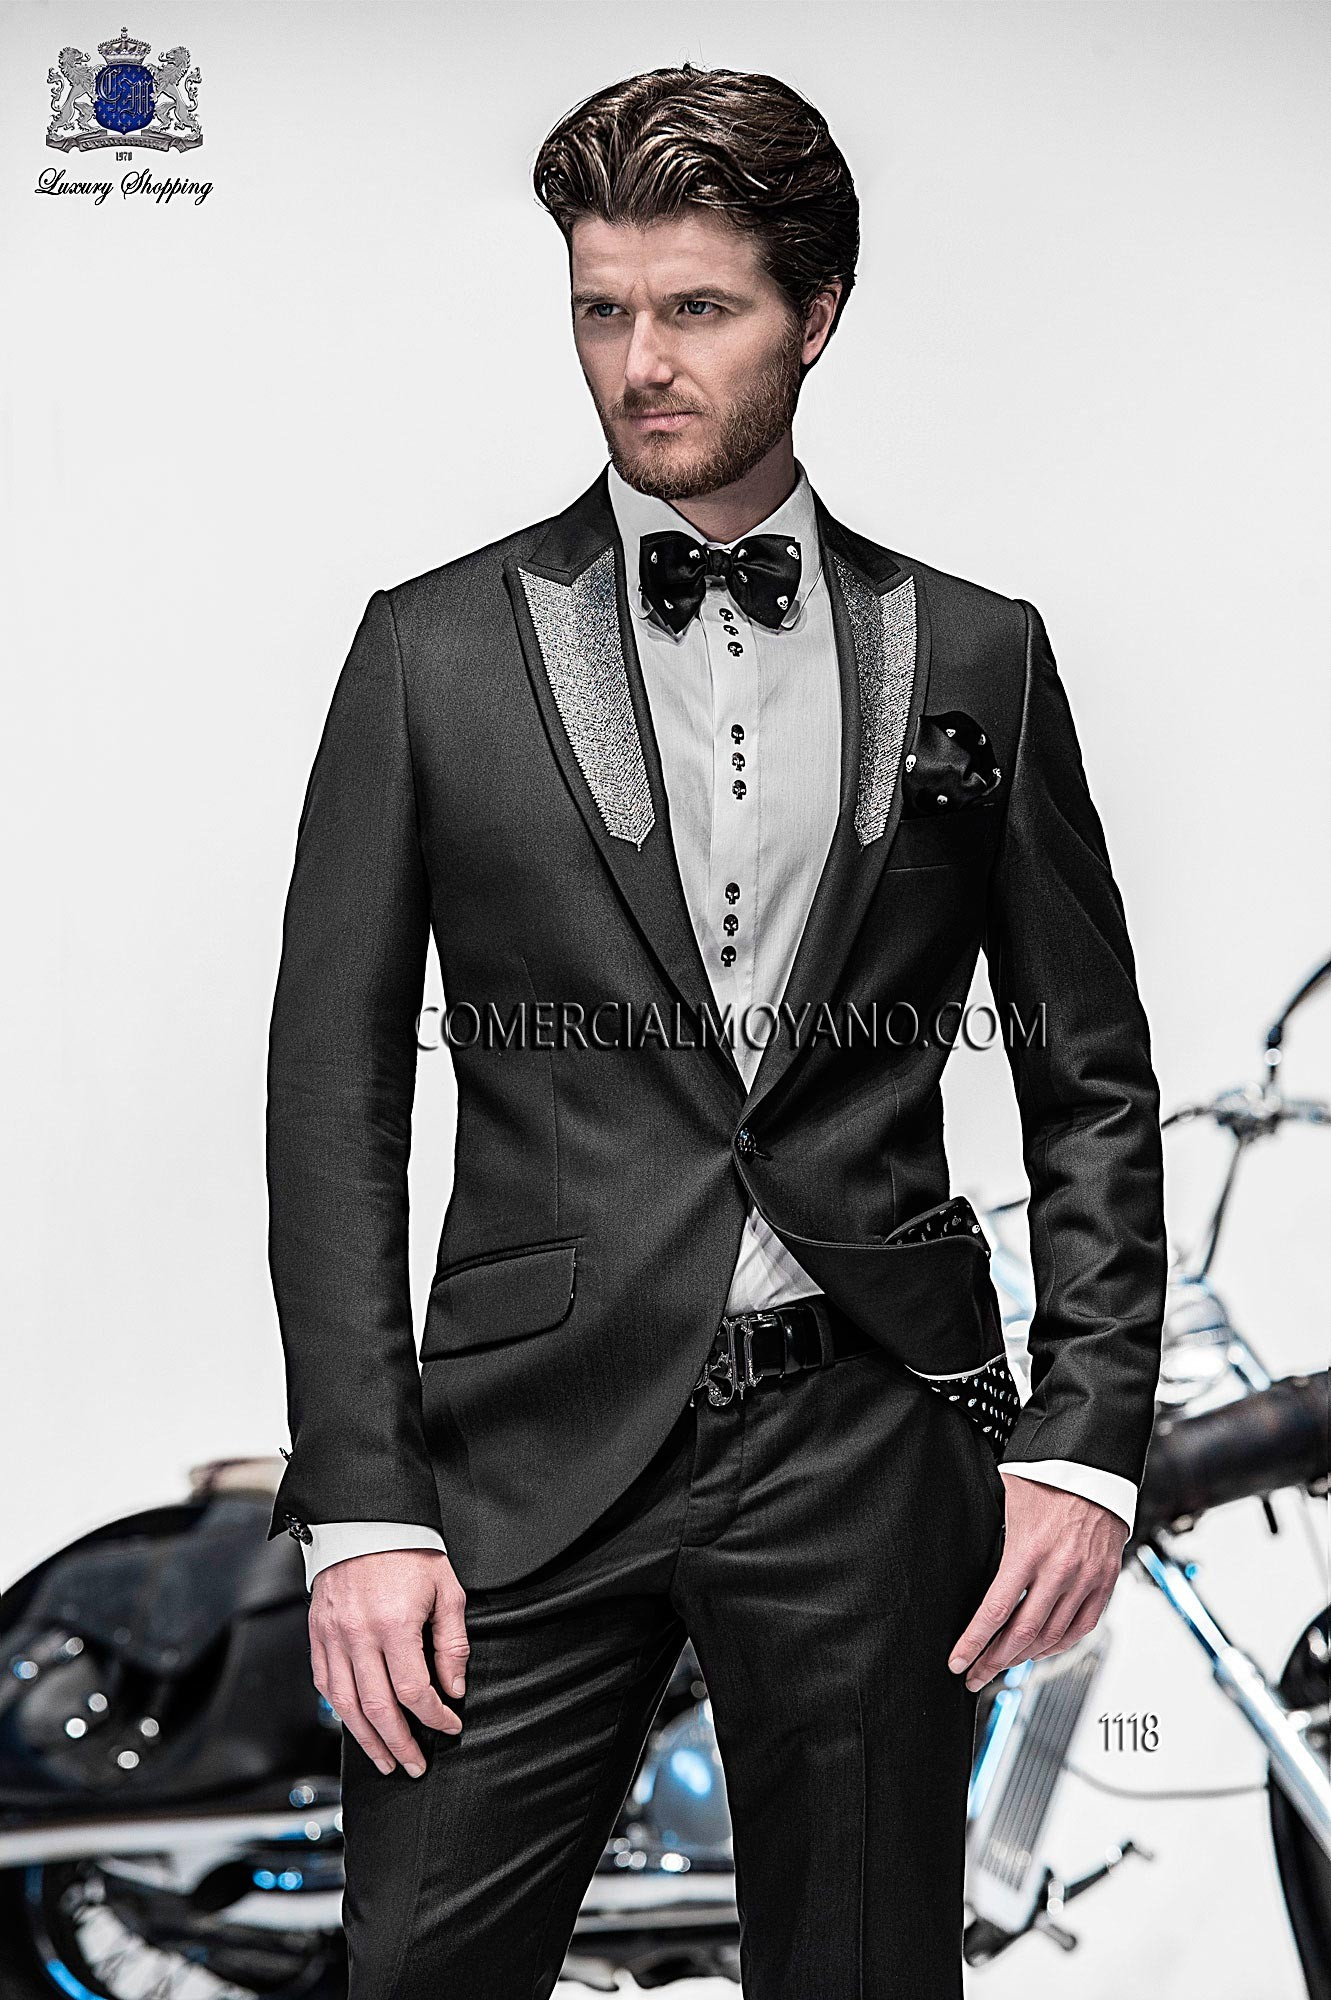 Emotion black men wedding suit model 1118 Ottavio Nuccio Gala